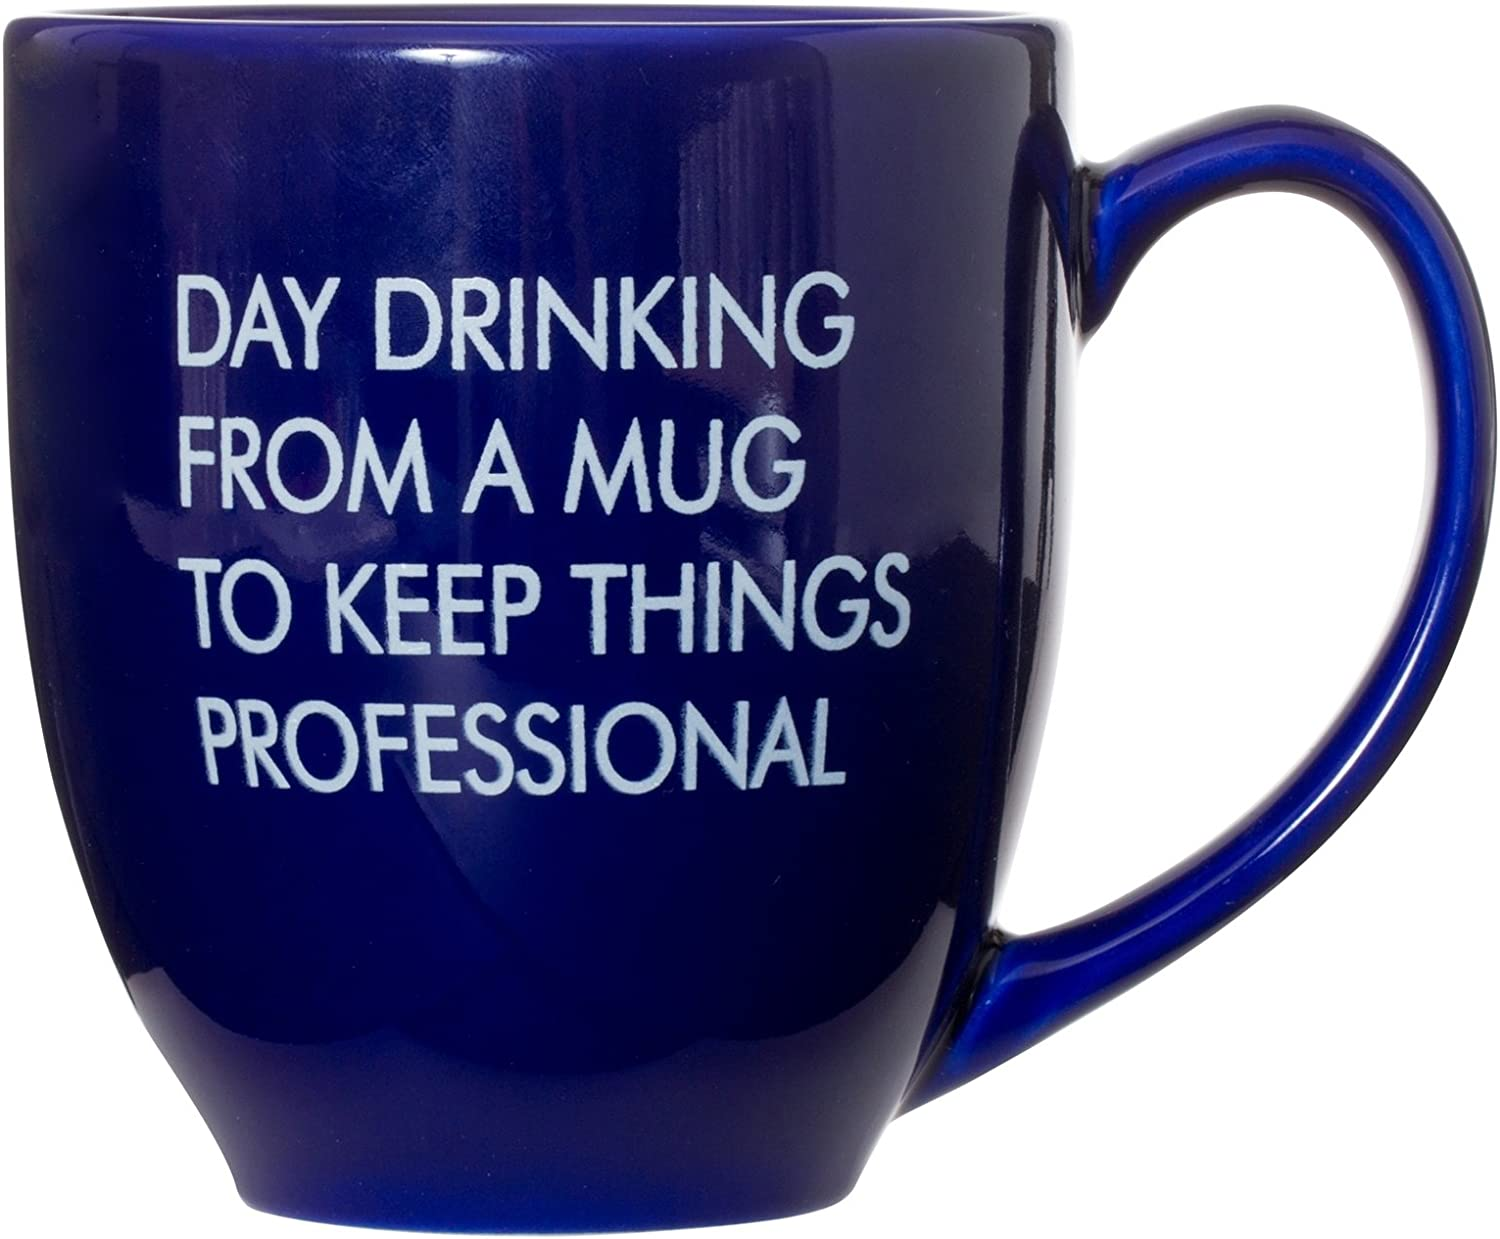 Day Drinking From A Mug To Keep Things Professional - Boss Employee Work Mug Gift - 15oz Deluxe Bistro Double-Sided Coffee Tea Mug (Blue)